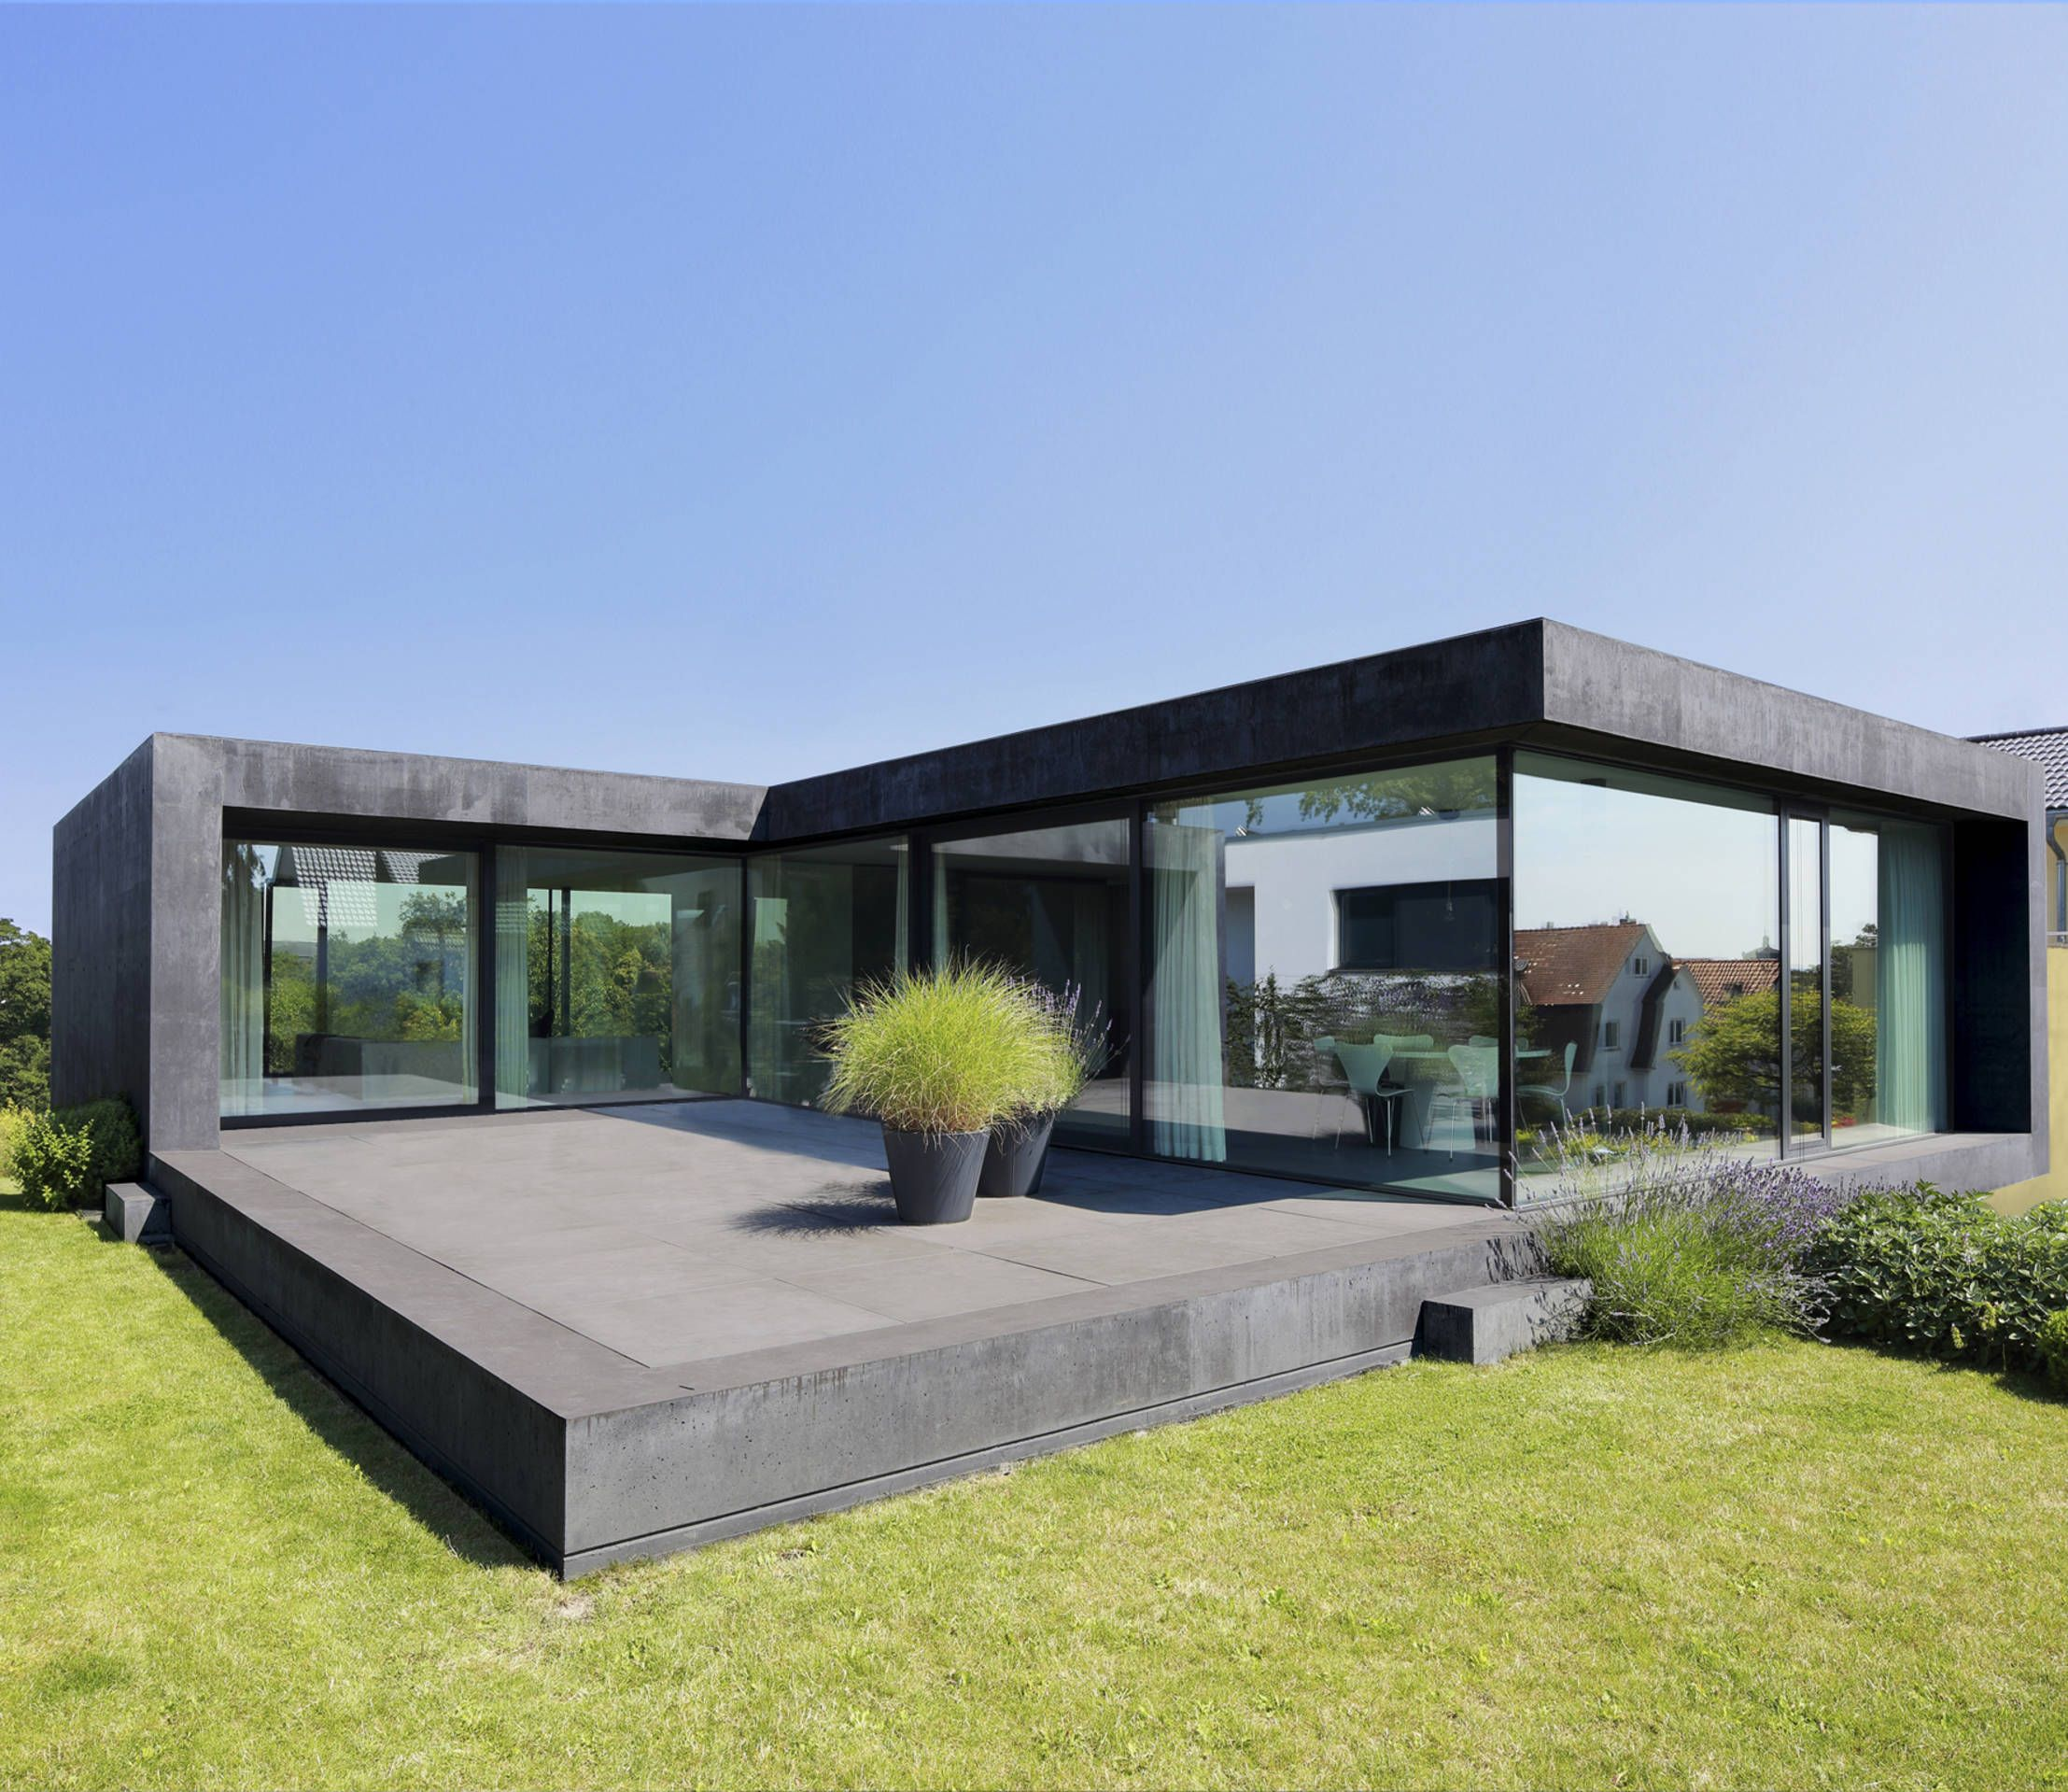 11 sensationelle h user mit viel glas glas architektur for Modernes haus nrw